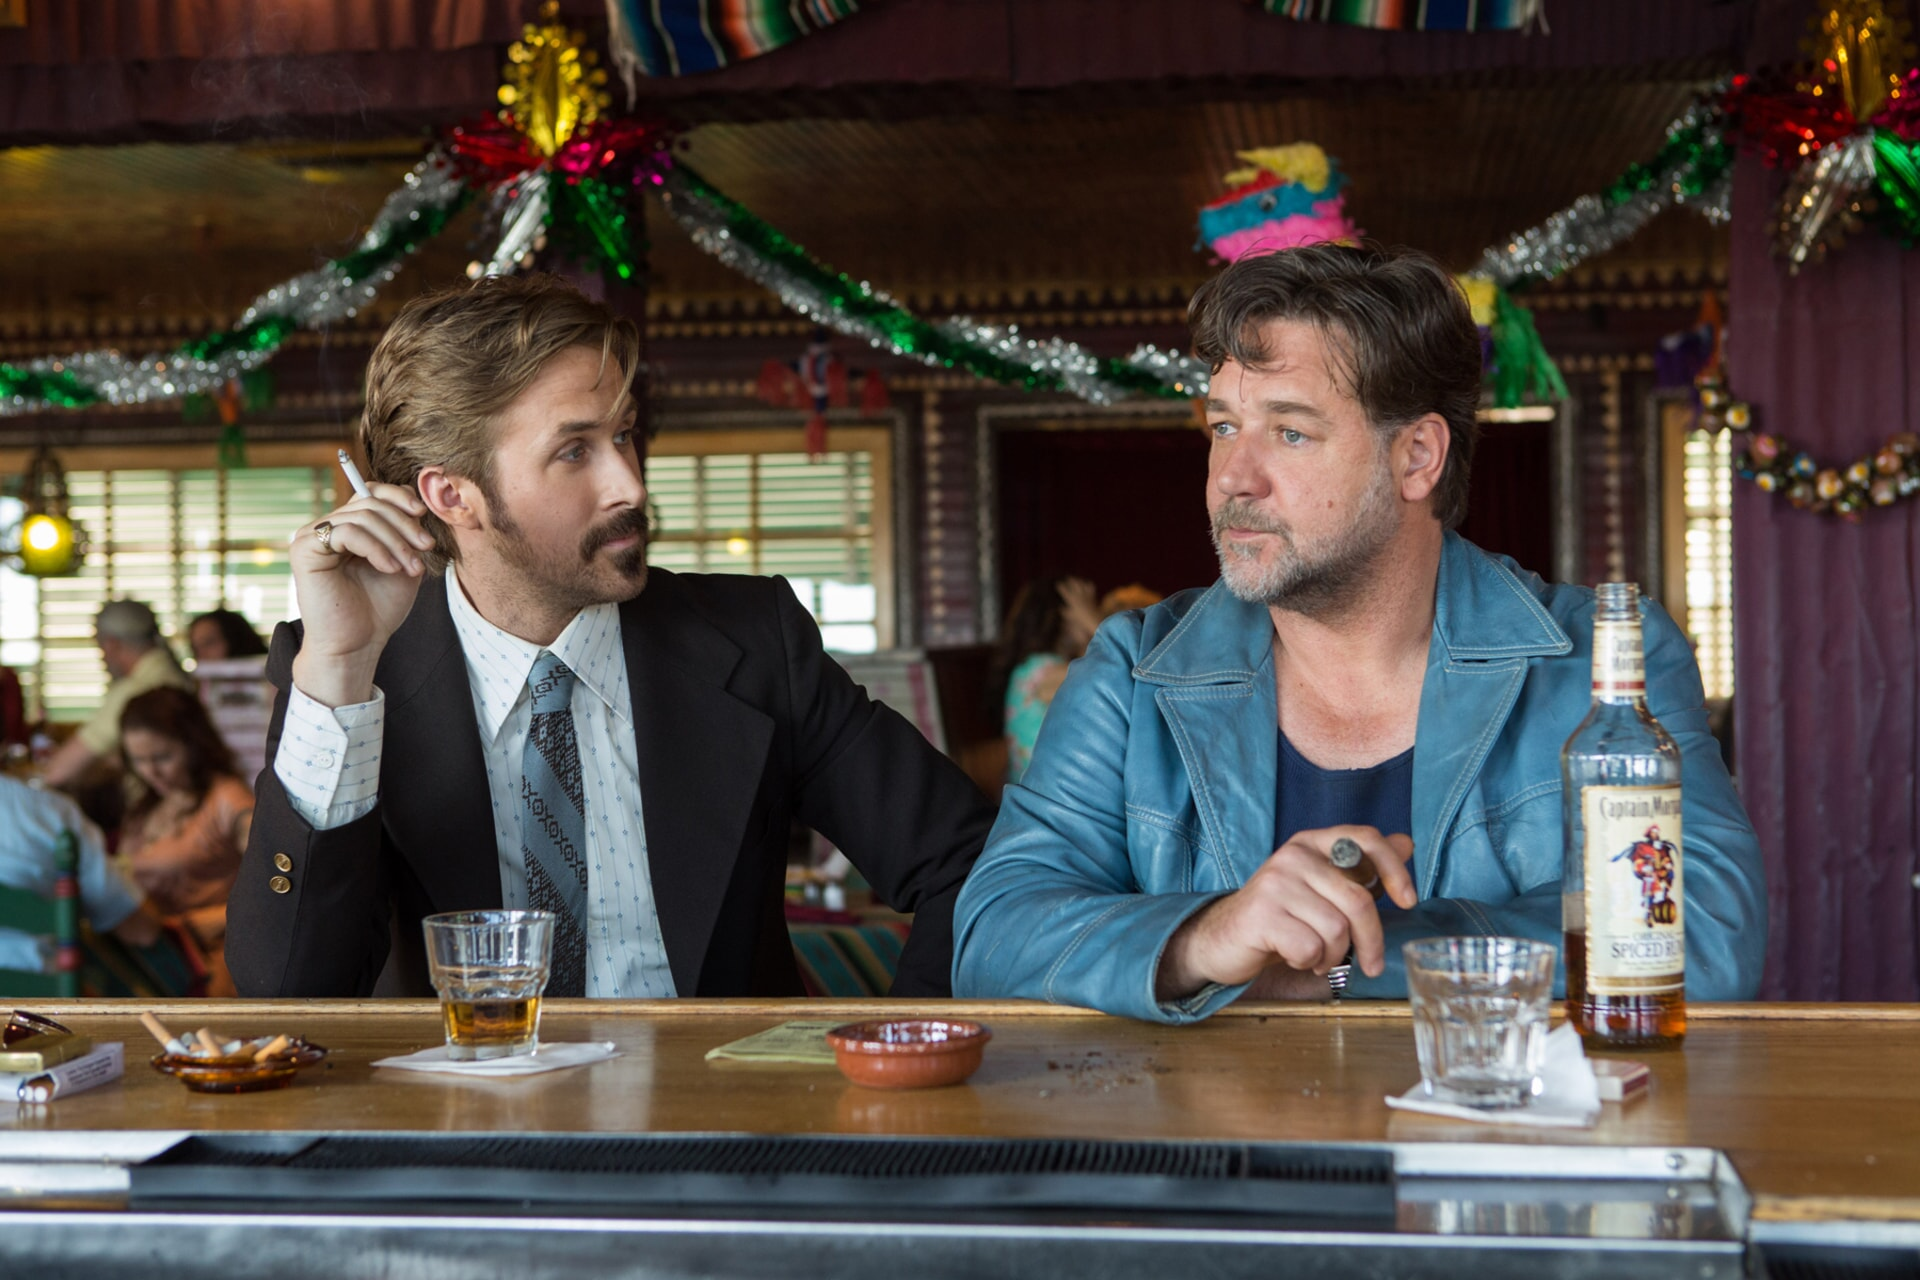 RYAN GOSLING as Holland March and RUSSELL CROWE as Jackson Healy sitting together at a bar